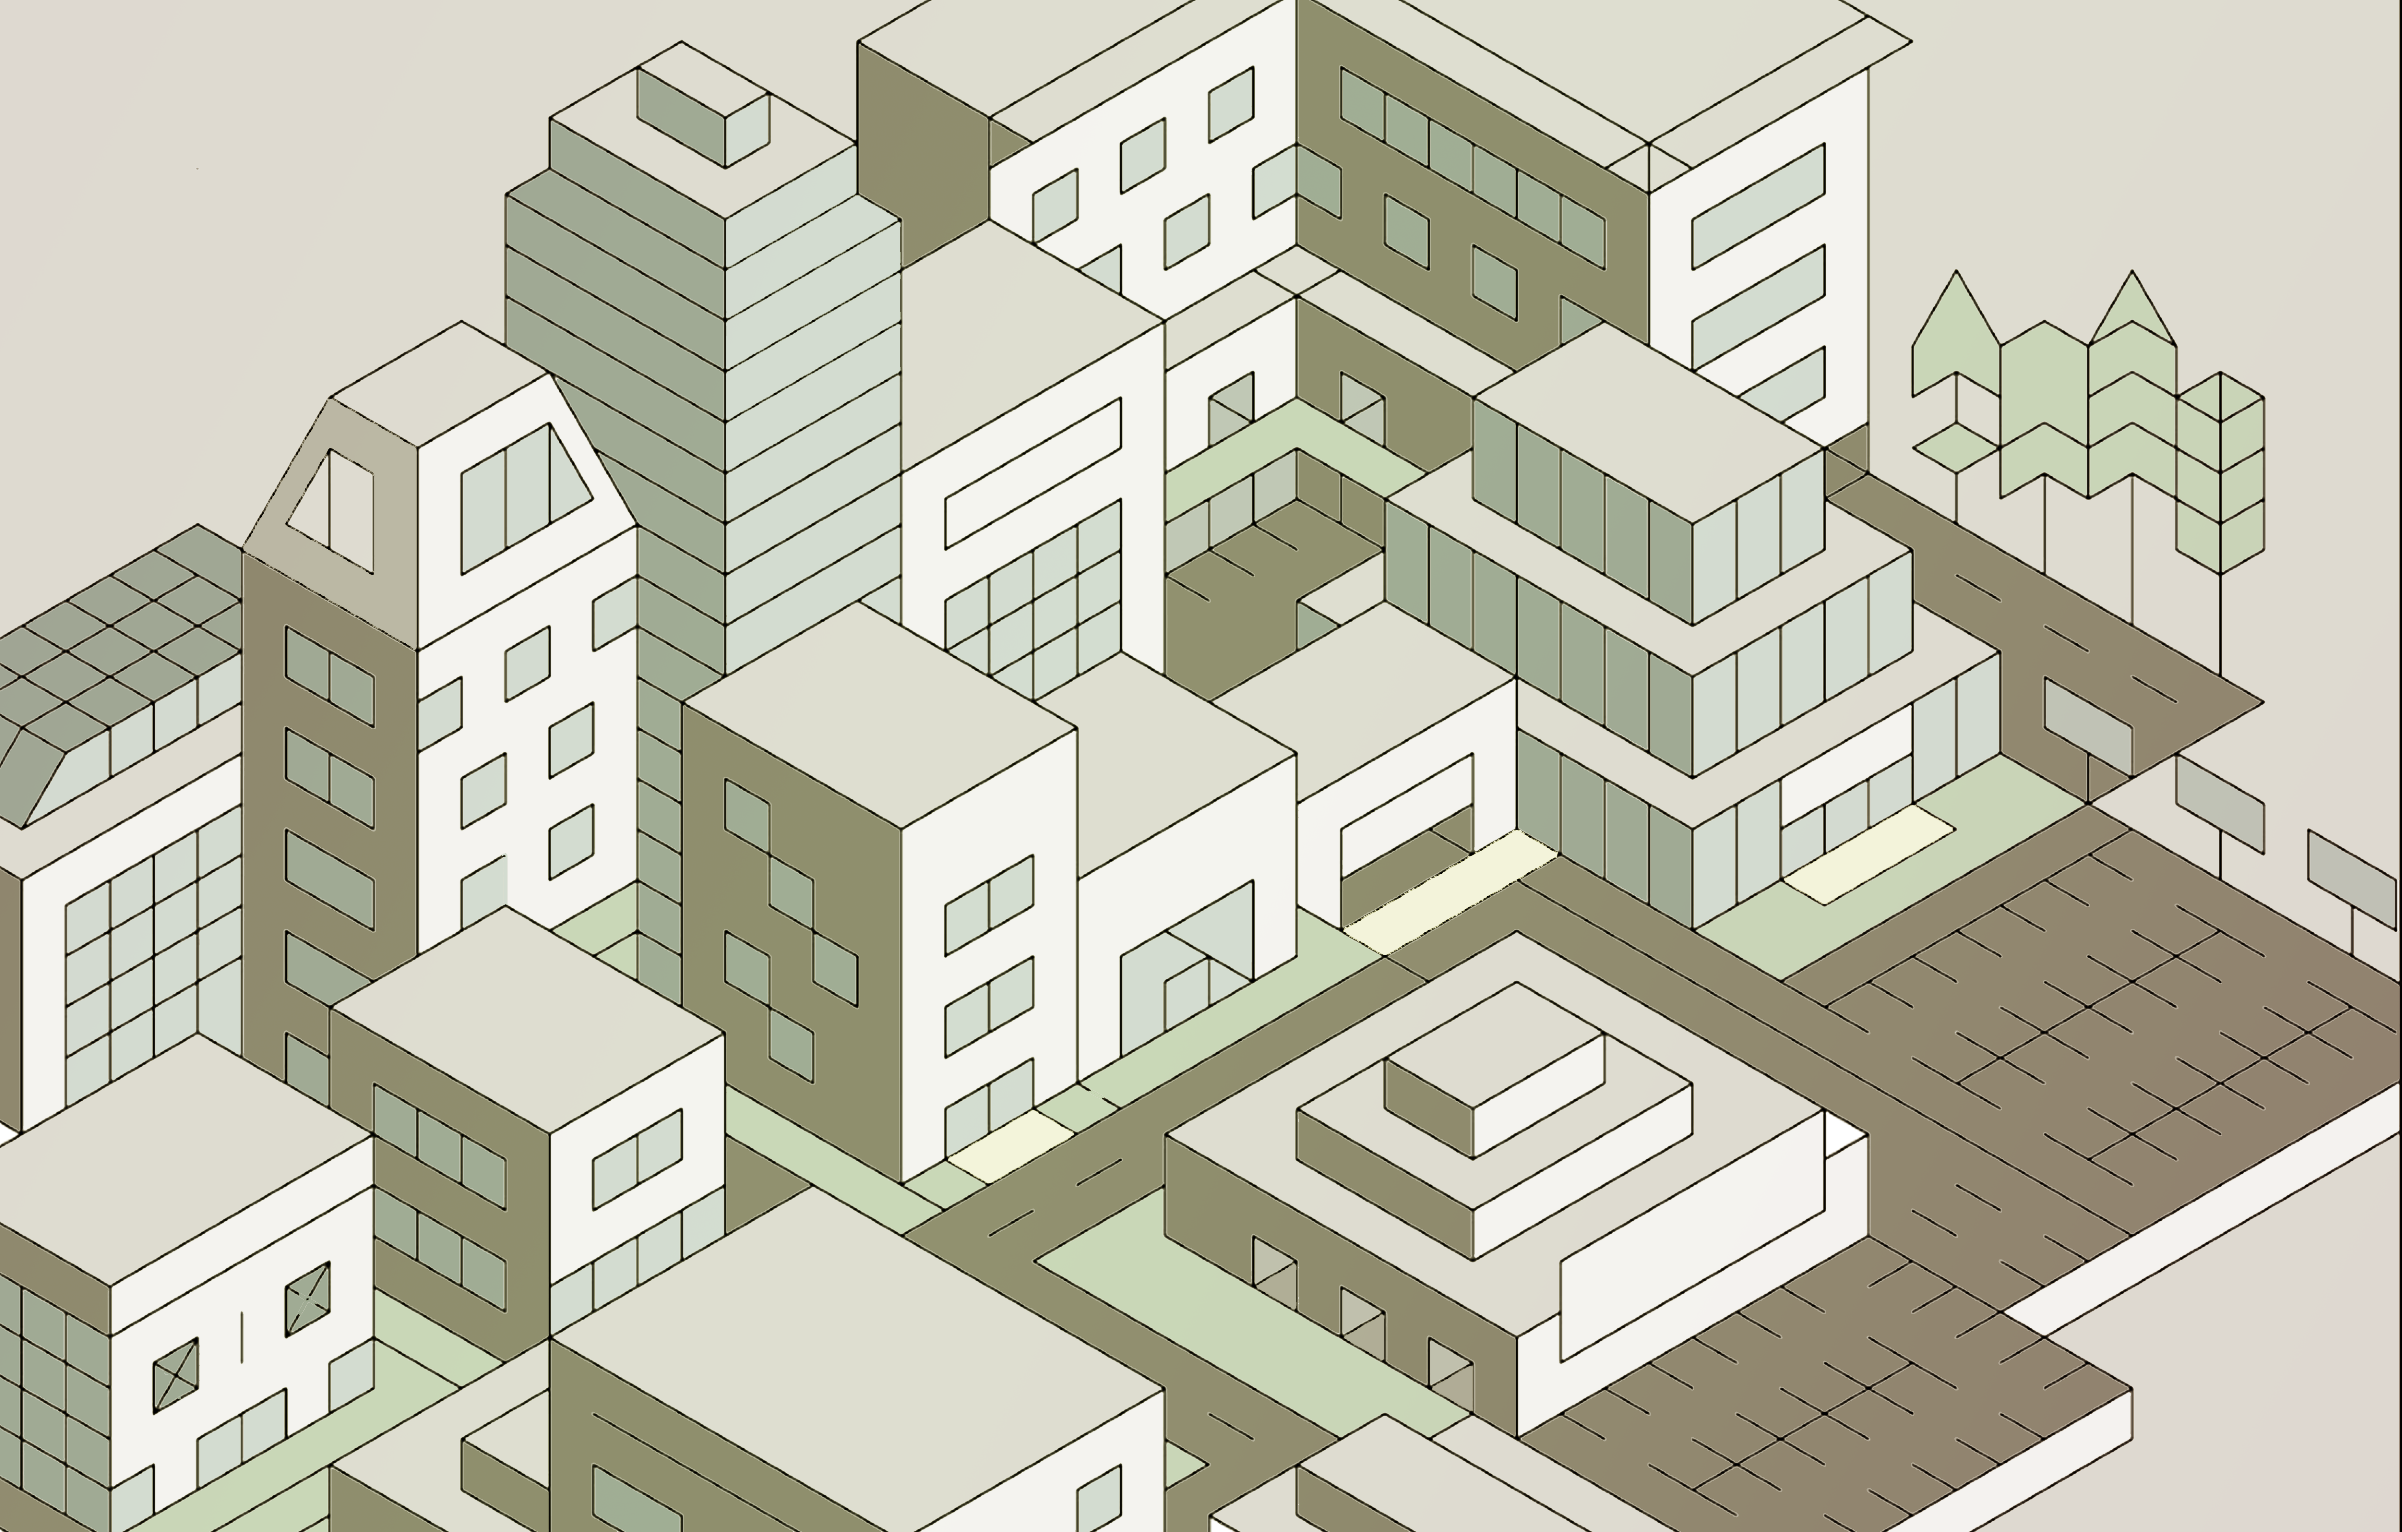 isometric_WIP2.png